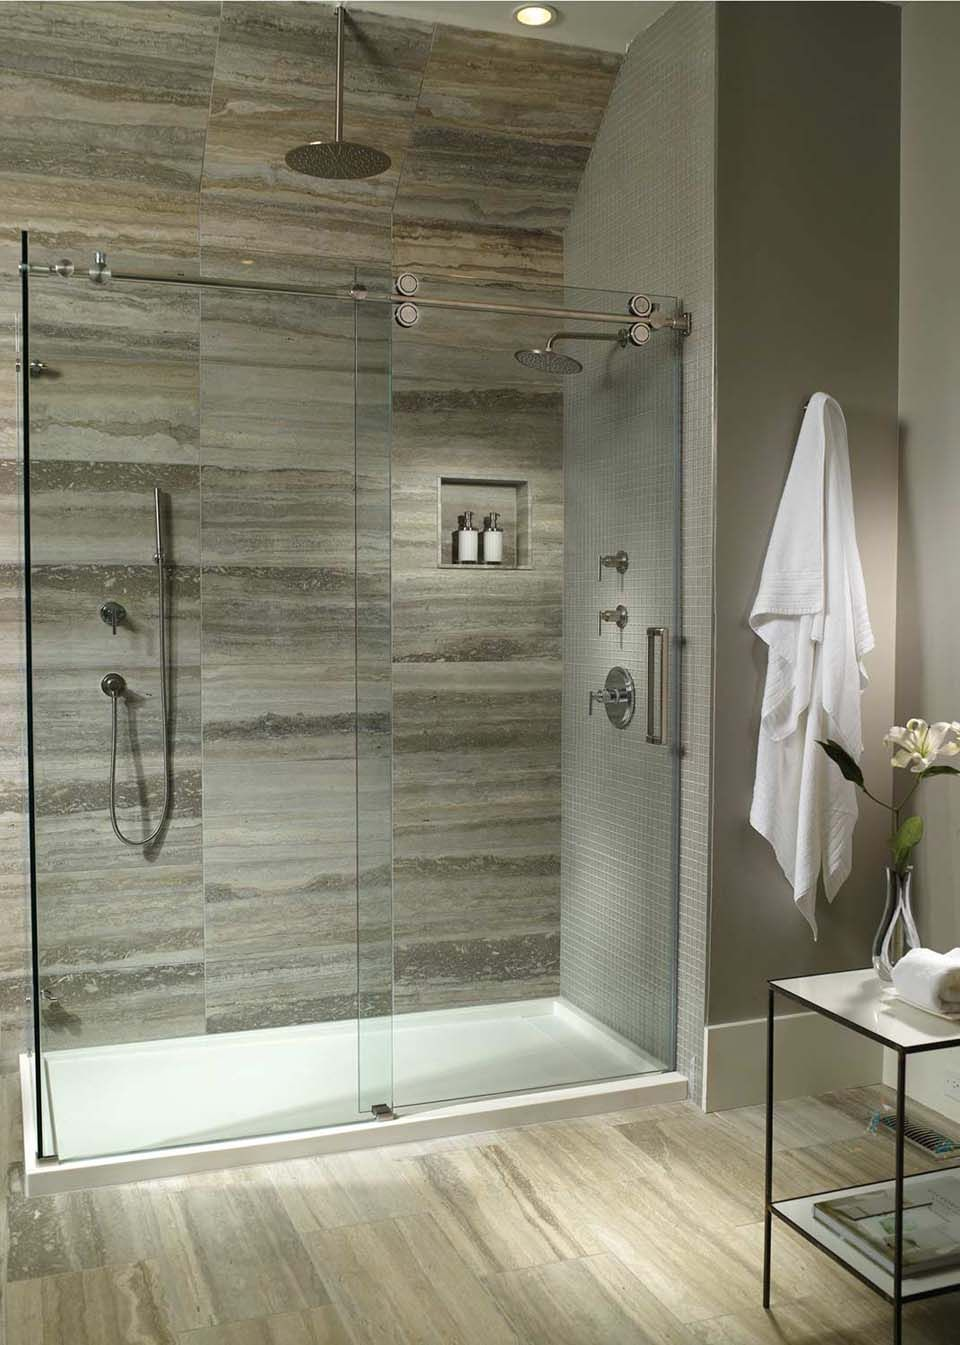 Awesome 30+ Tiled Shower Vs Fiberglass Design Inspiration Of ...